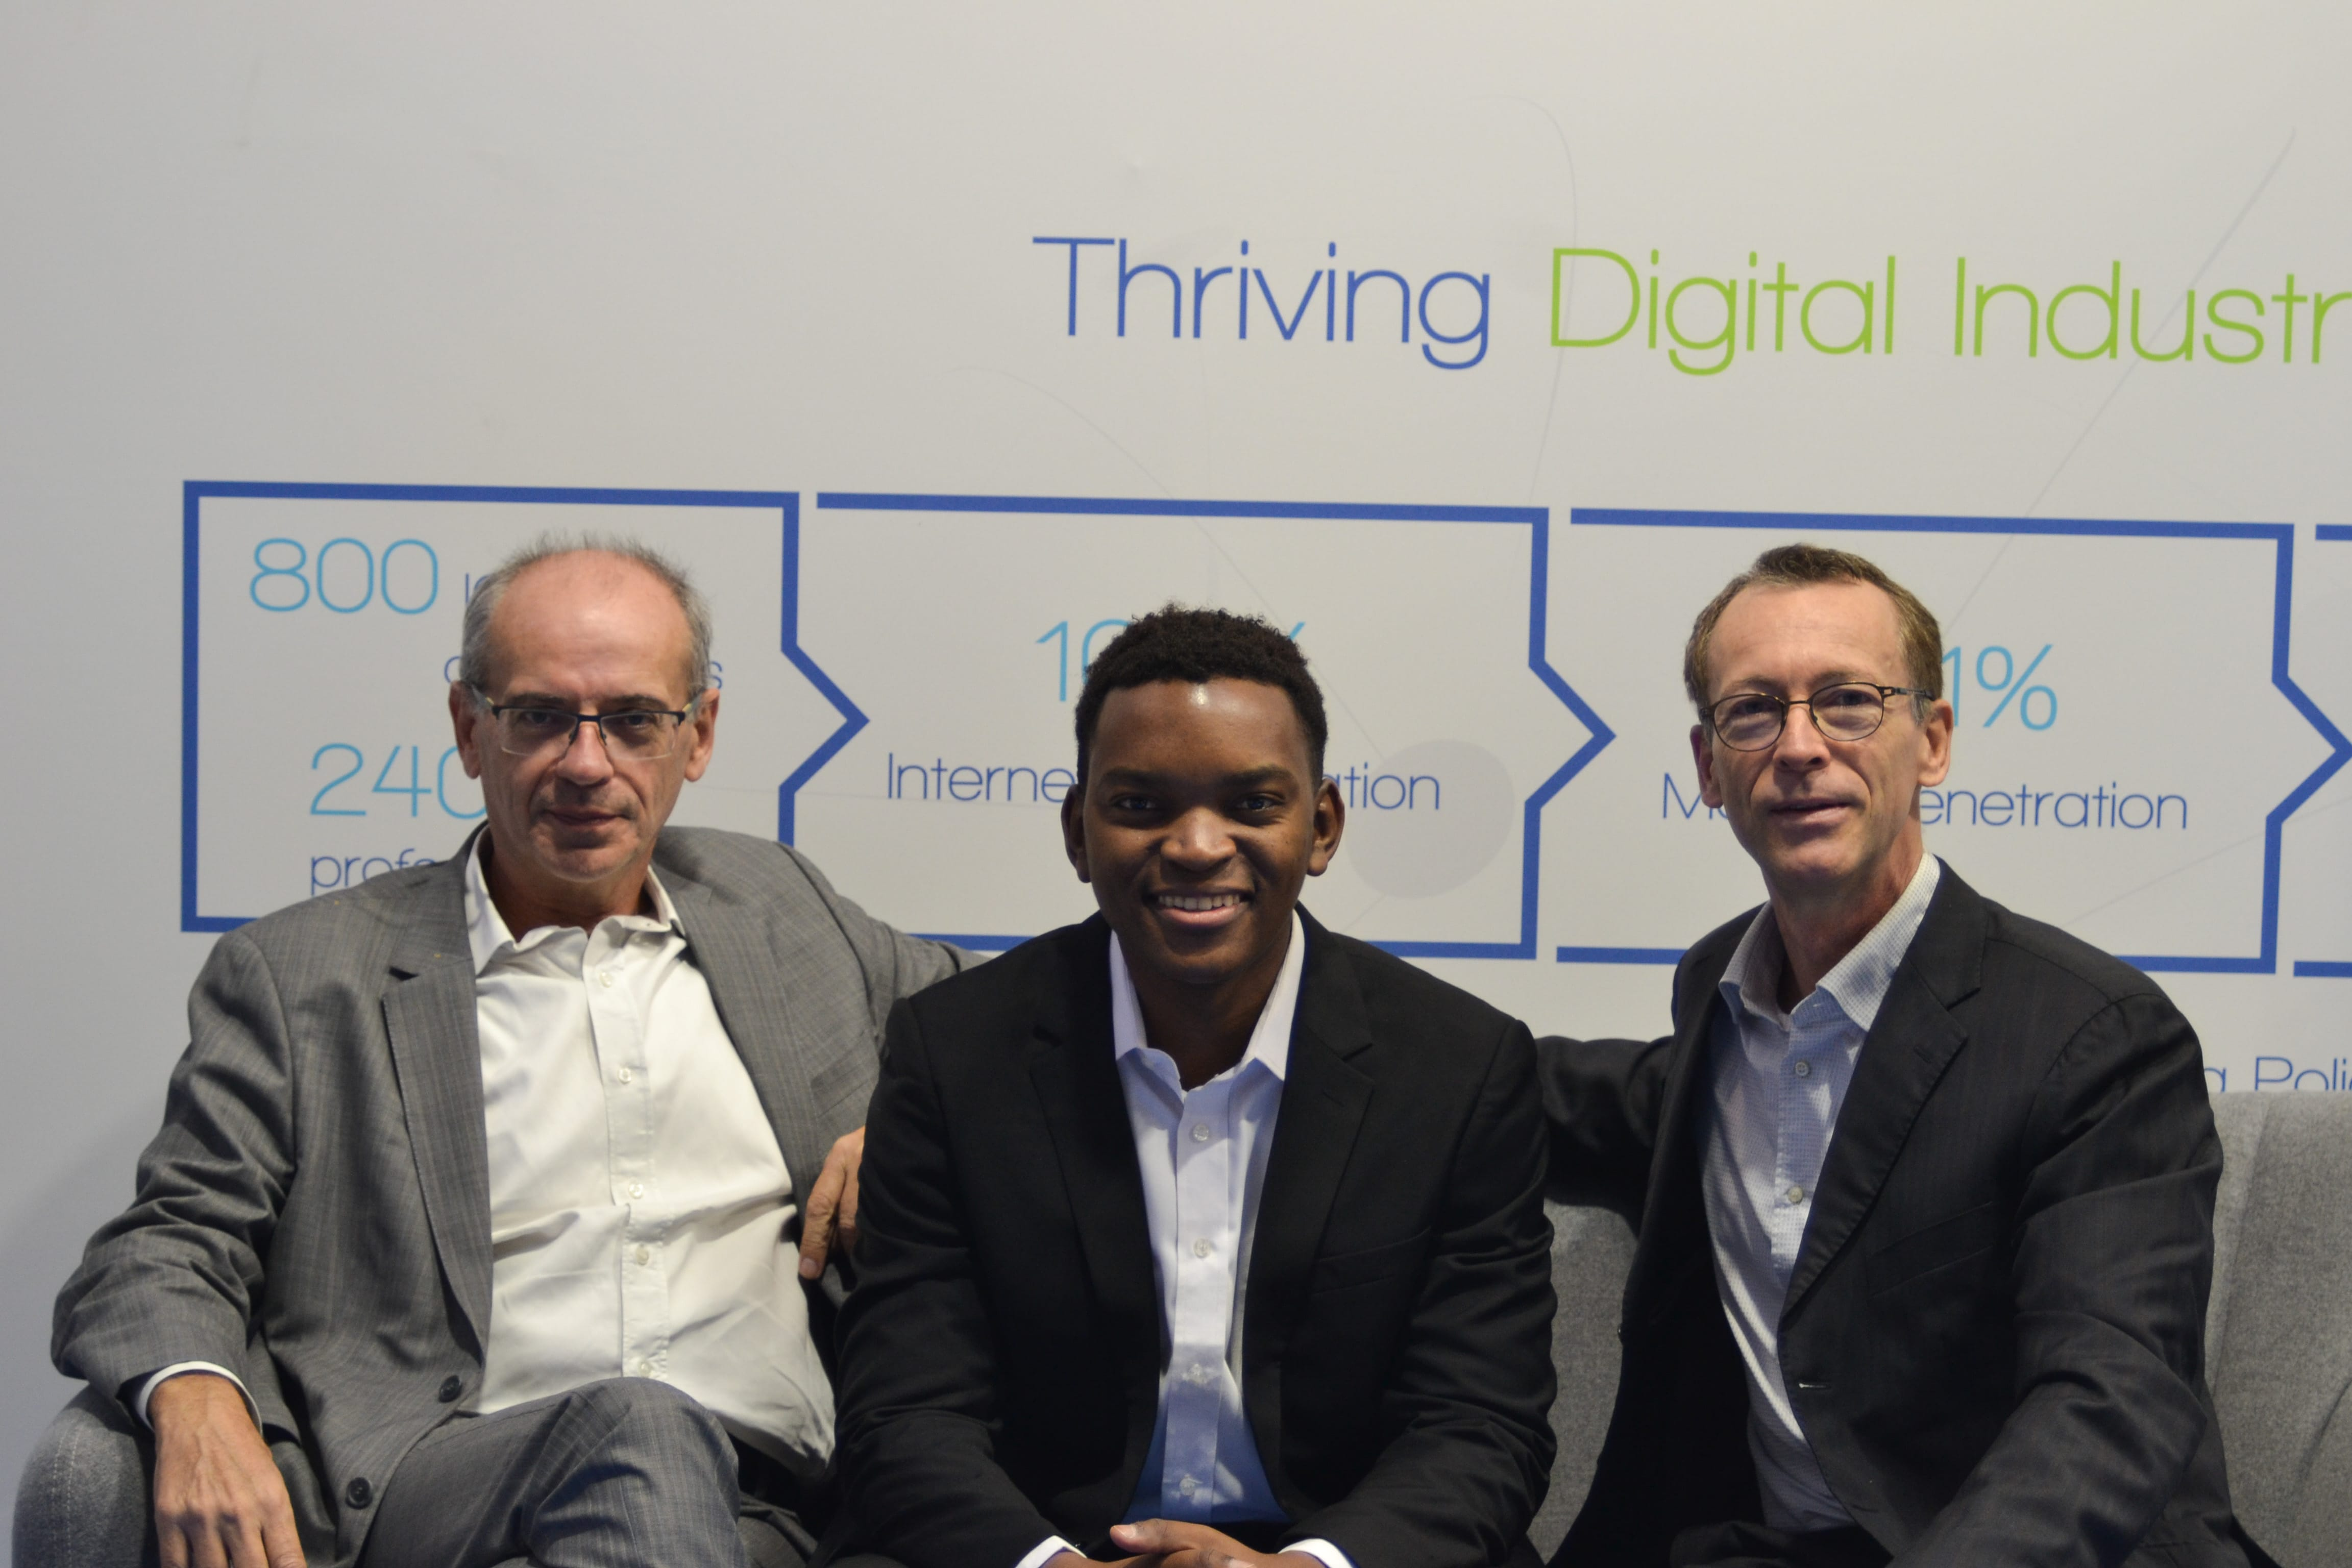 With Denis Lacour (left) and Michel Cordani (right), our Advisors at VivaTech 2019